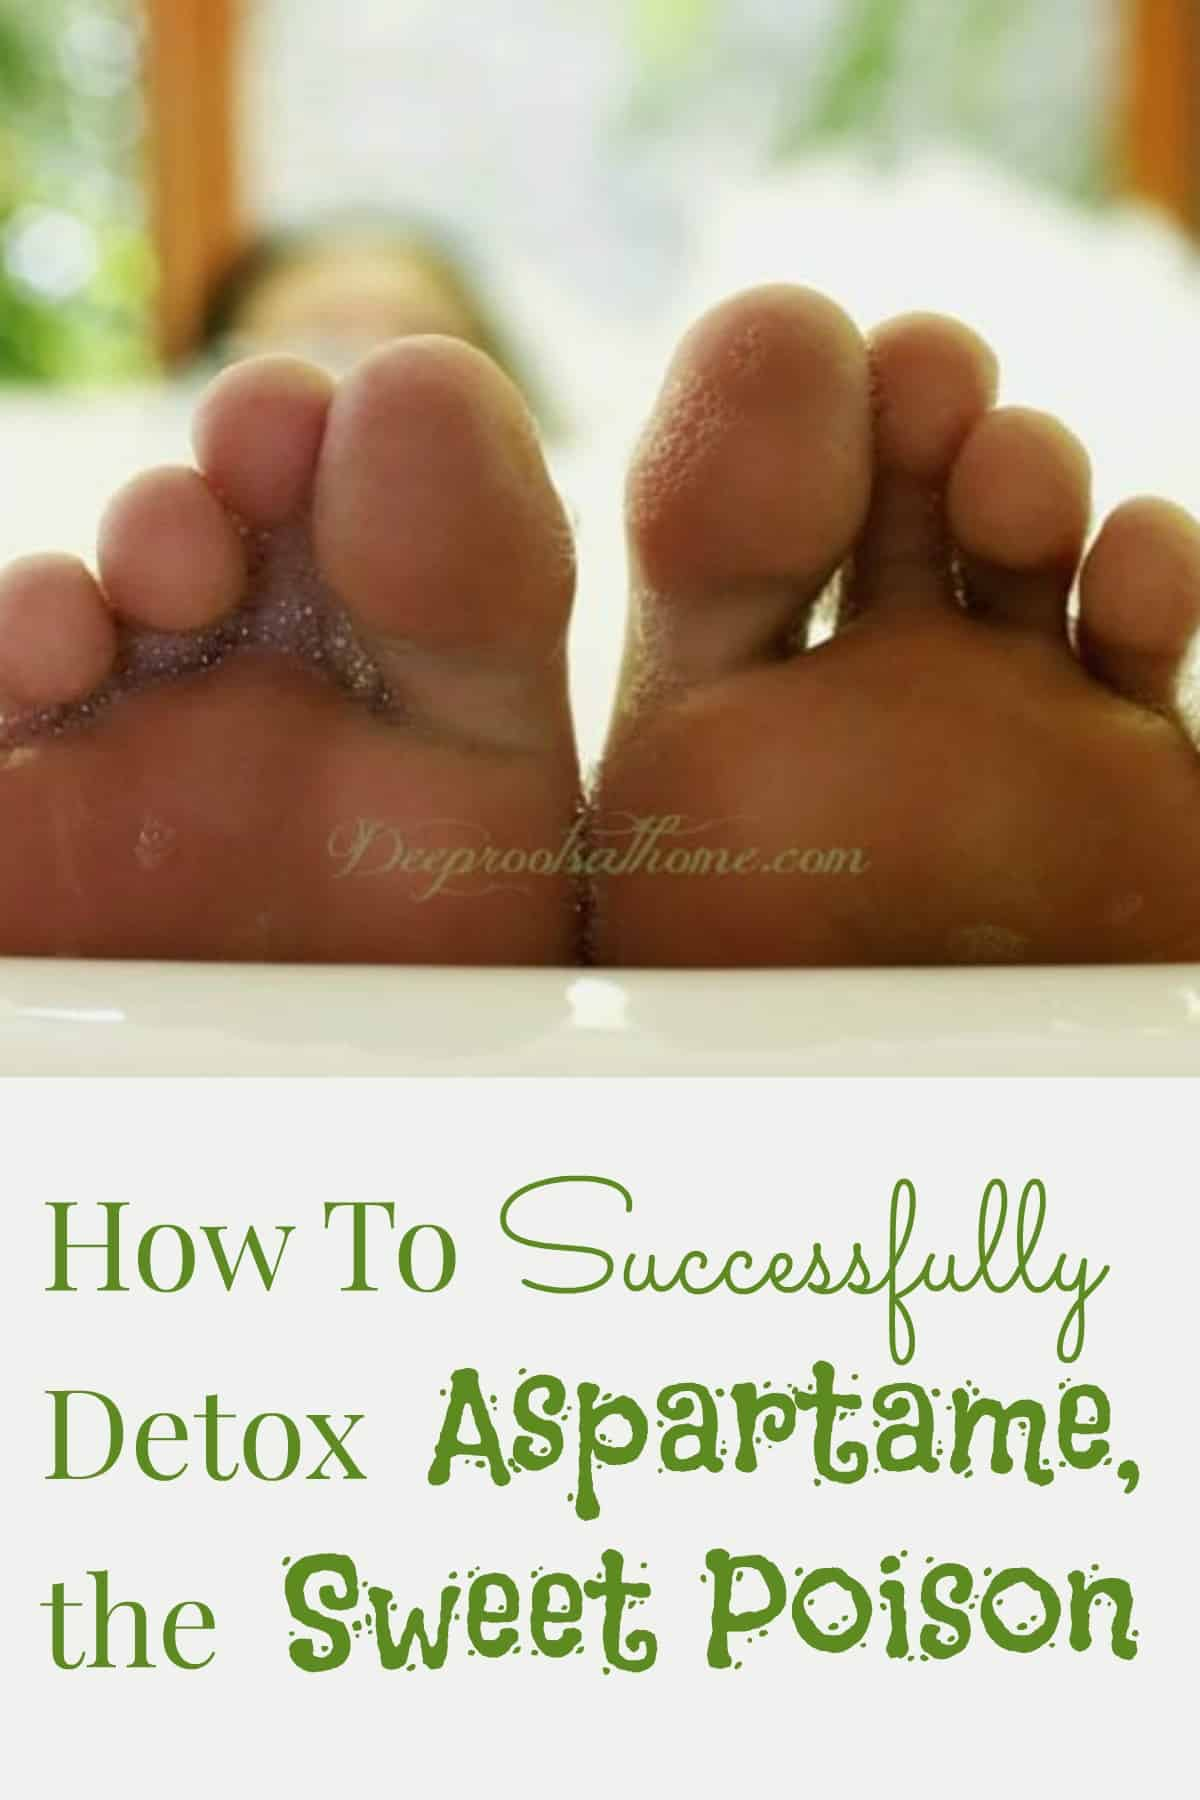 How To Detox Aspartame, the Sweet Poison. A pair of feet soaking in the bathtub.